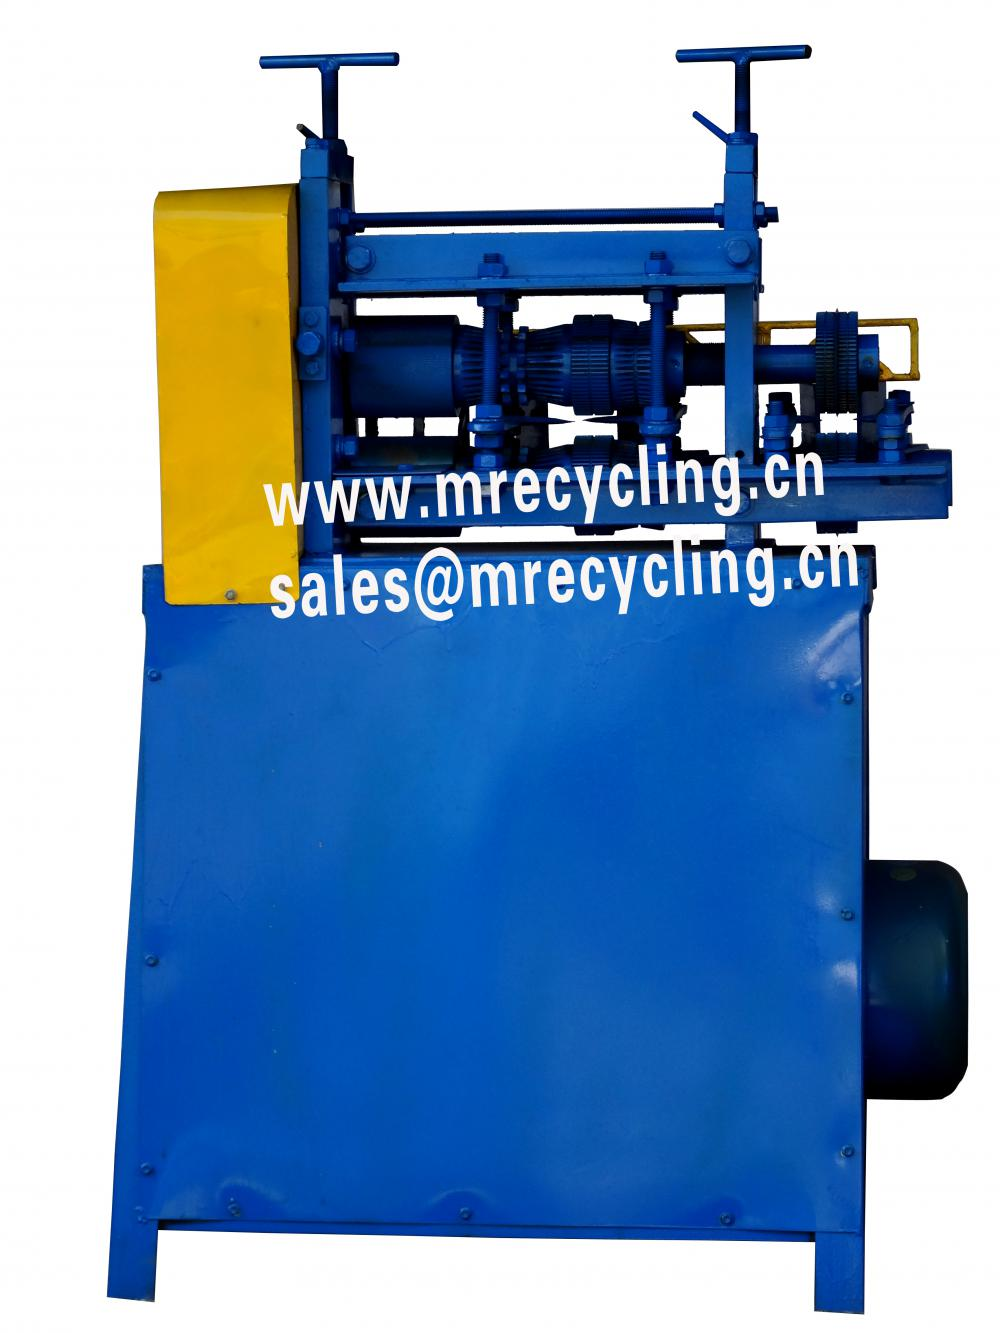 metal recycling industry